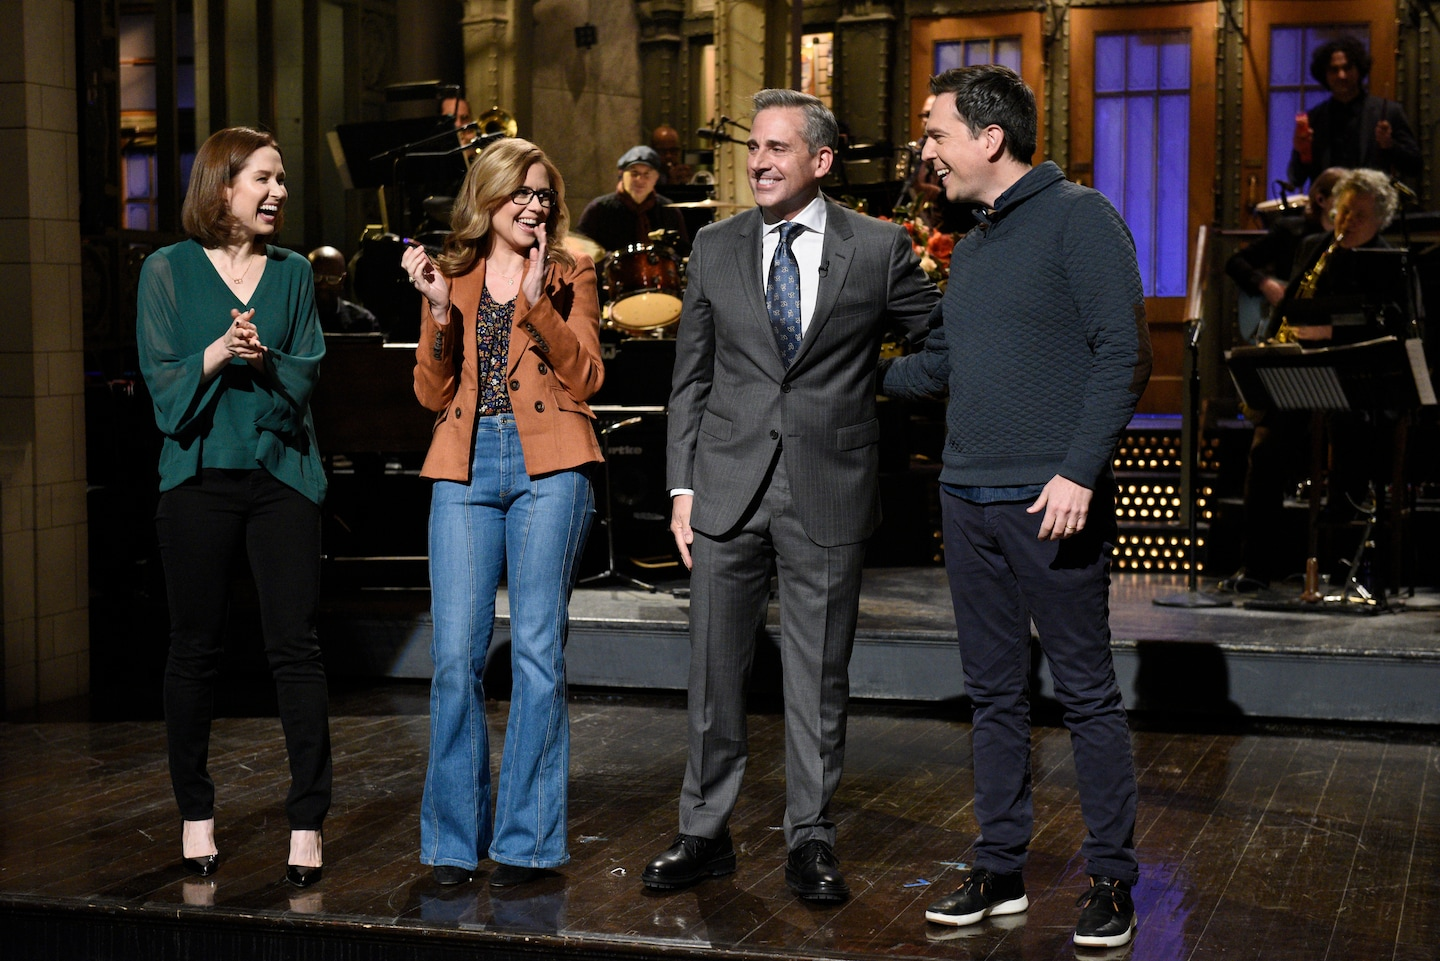 Steve Carell's 'Saturday Night Live' monologue turned into a mini 'Office' reunion